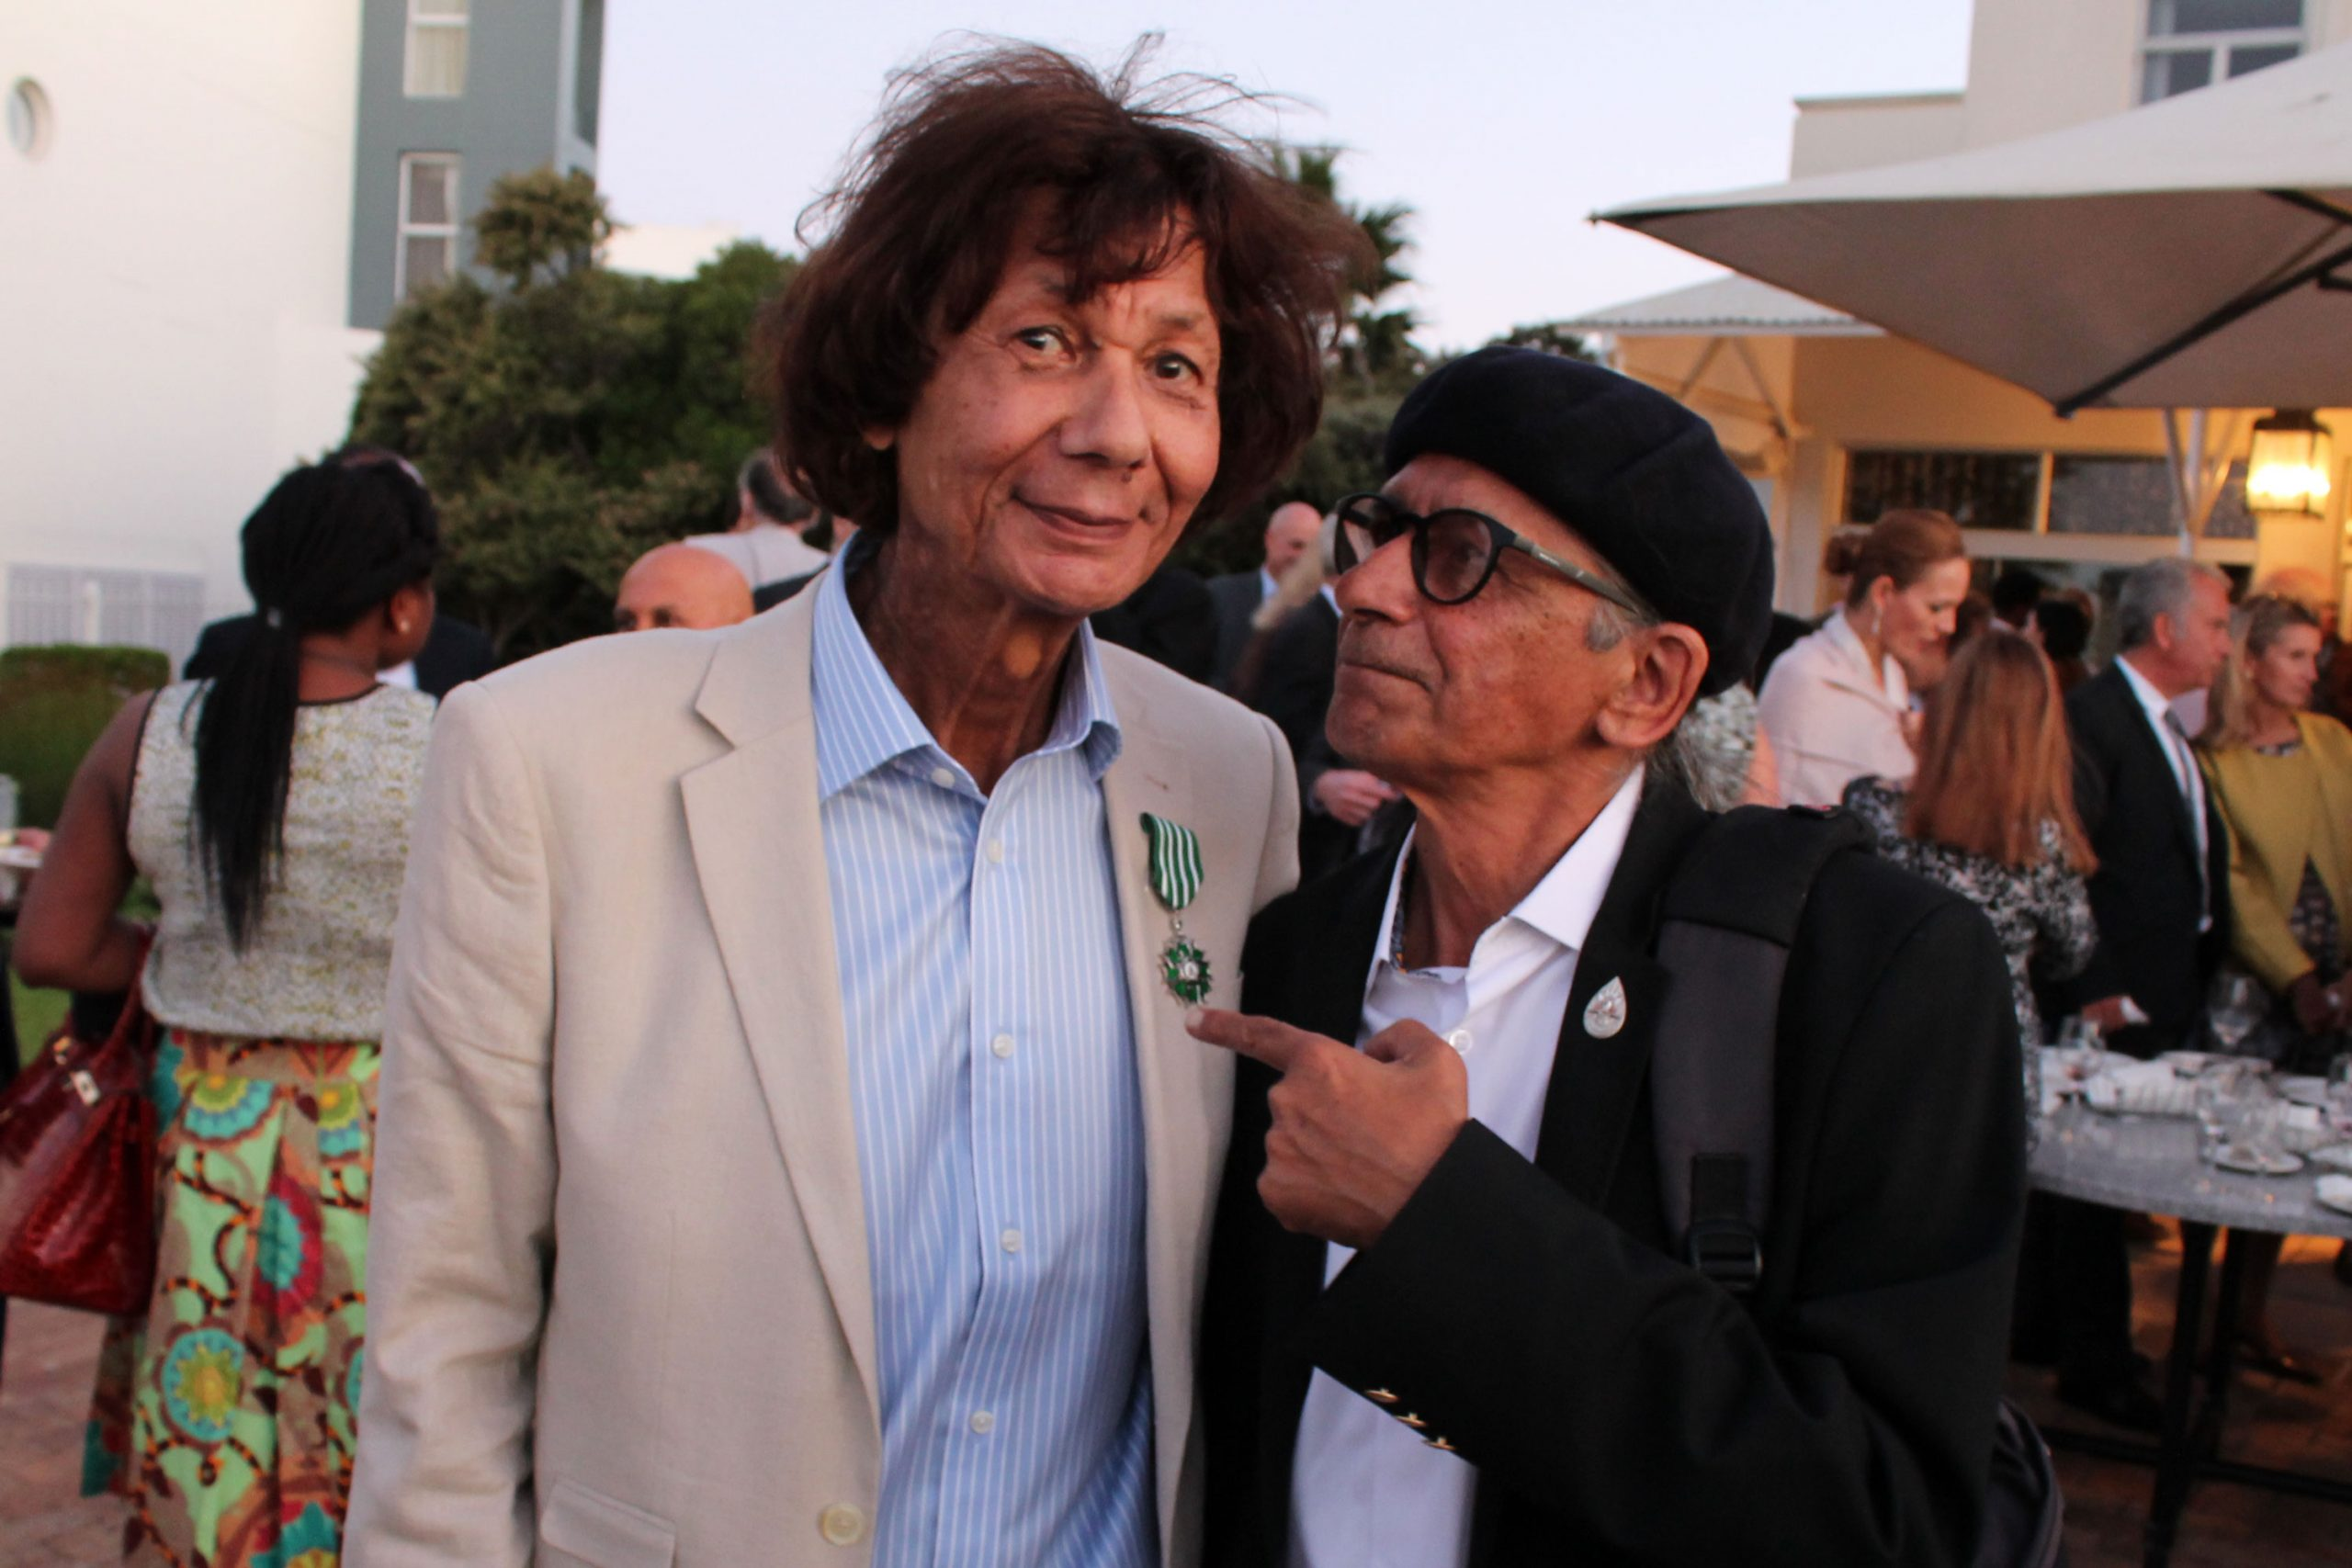 February 2016: From left, George Hallett and his friend Rashid Lombard in Cape Town when Hallett was made a Chevalier of the Order of Arts and Letters by the French Ministry of Culture. (Photograph by Yazeed Kamaldien)